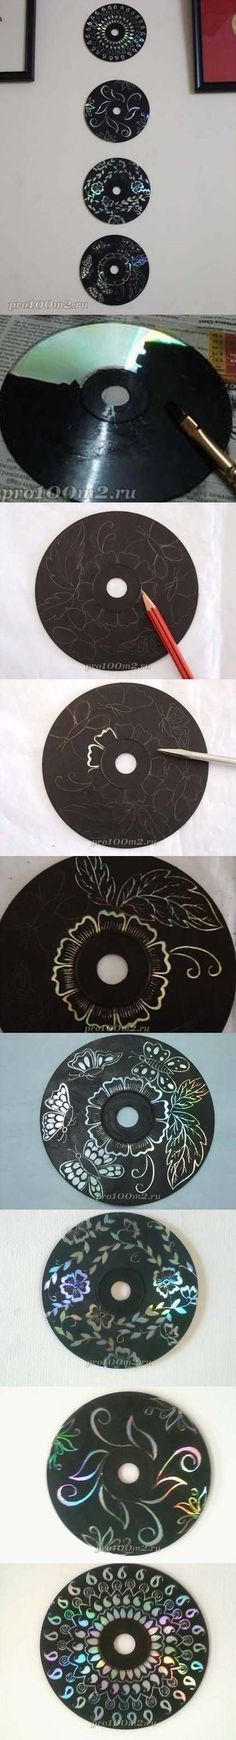 Recycled CDs - Possible Make & Take SRP prize? Have teen volunteers paint. Give painted CD with skewer in ziplock bag as prize | Crafts For Teens